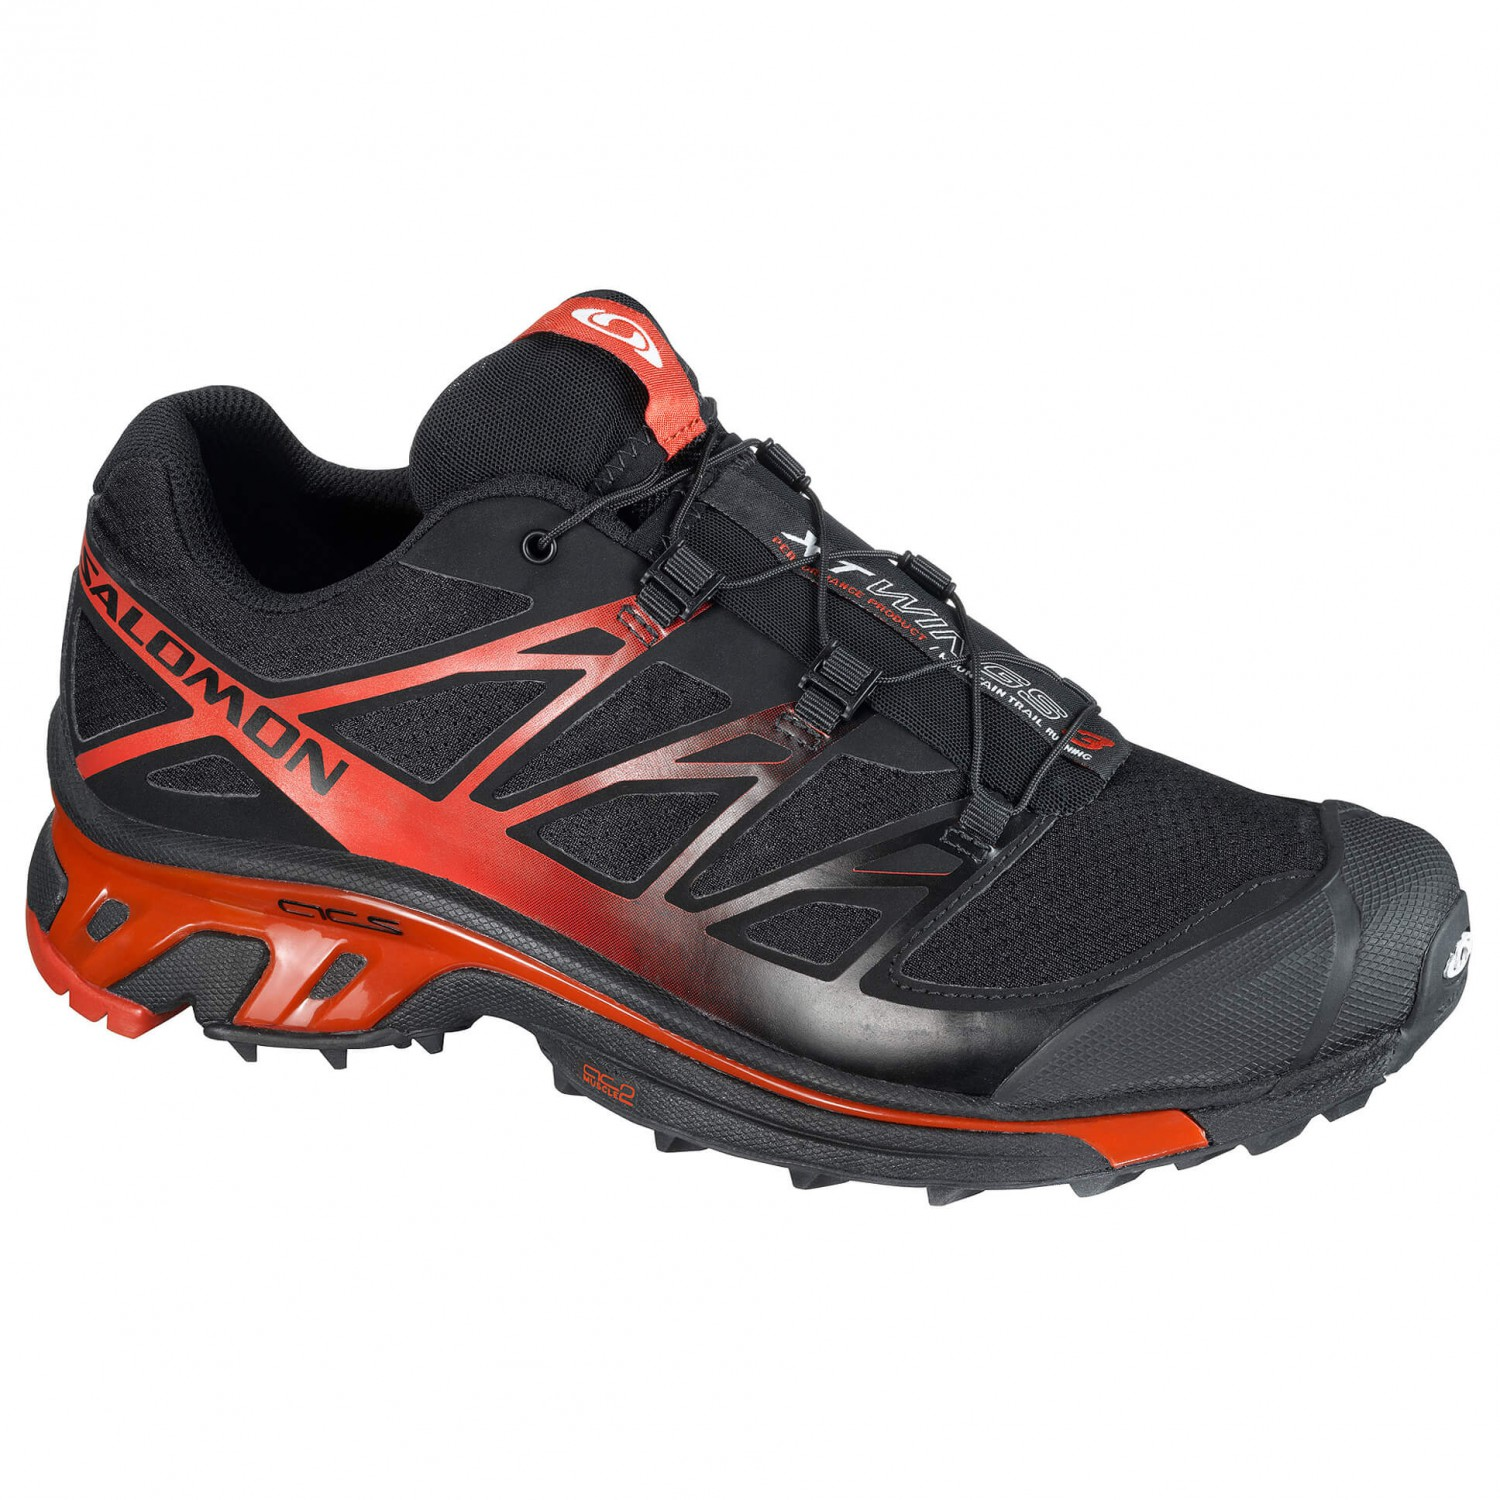 Salomon XT Wings Trail Running Shoes Review